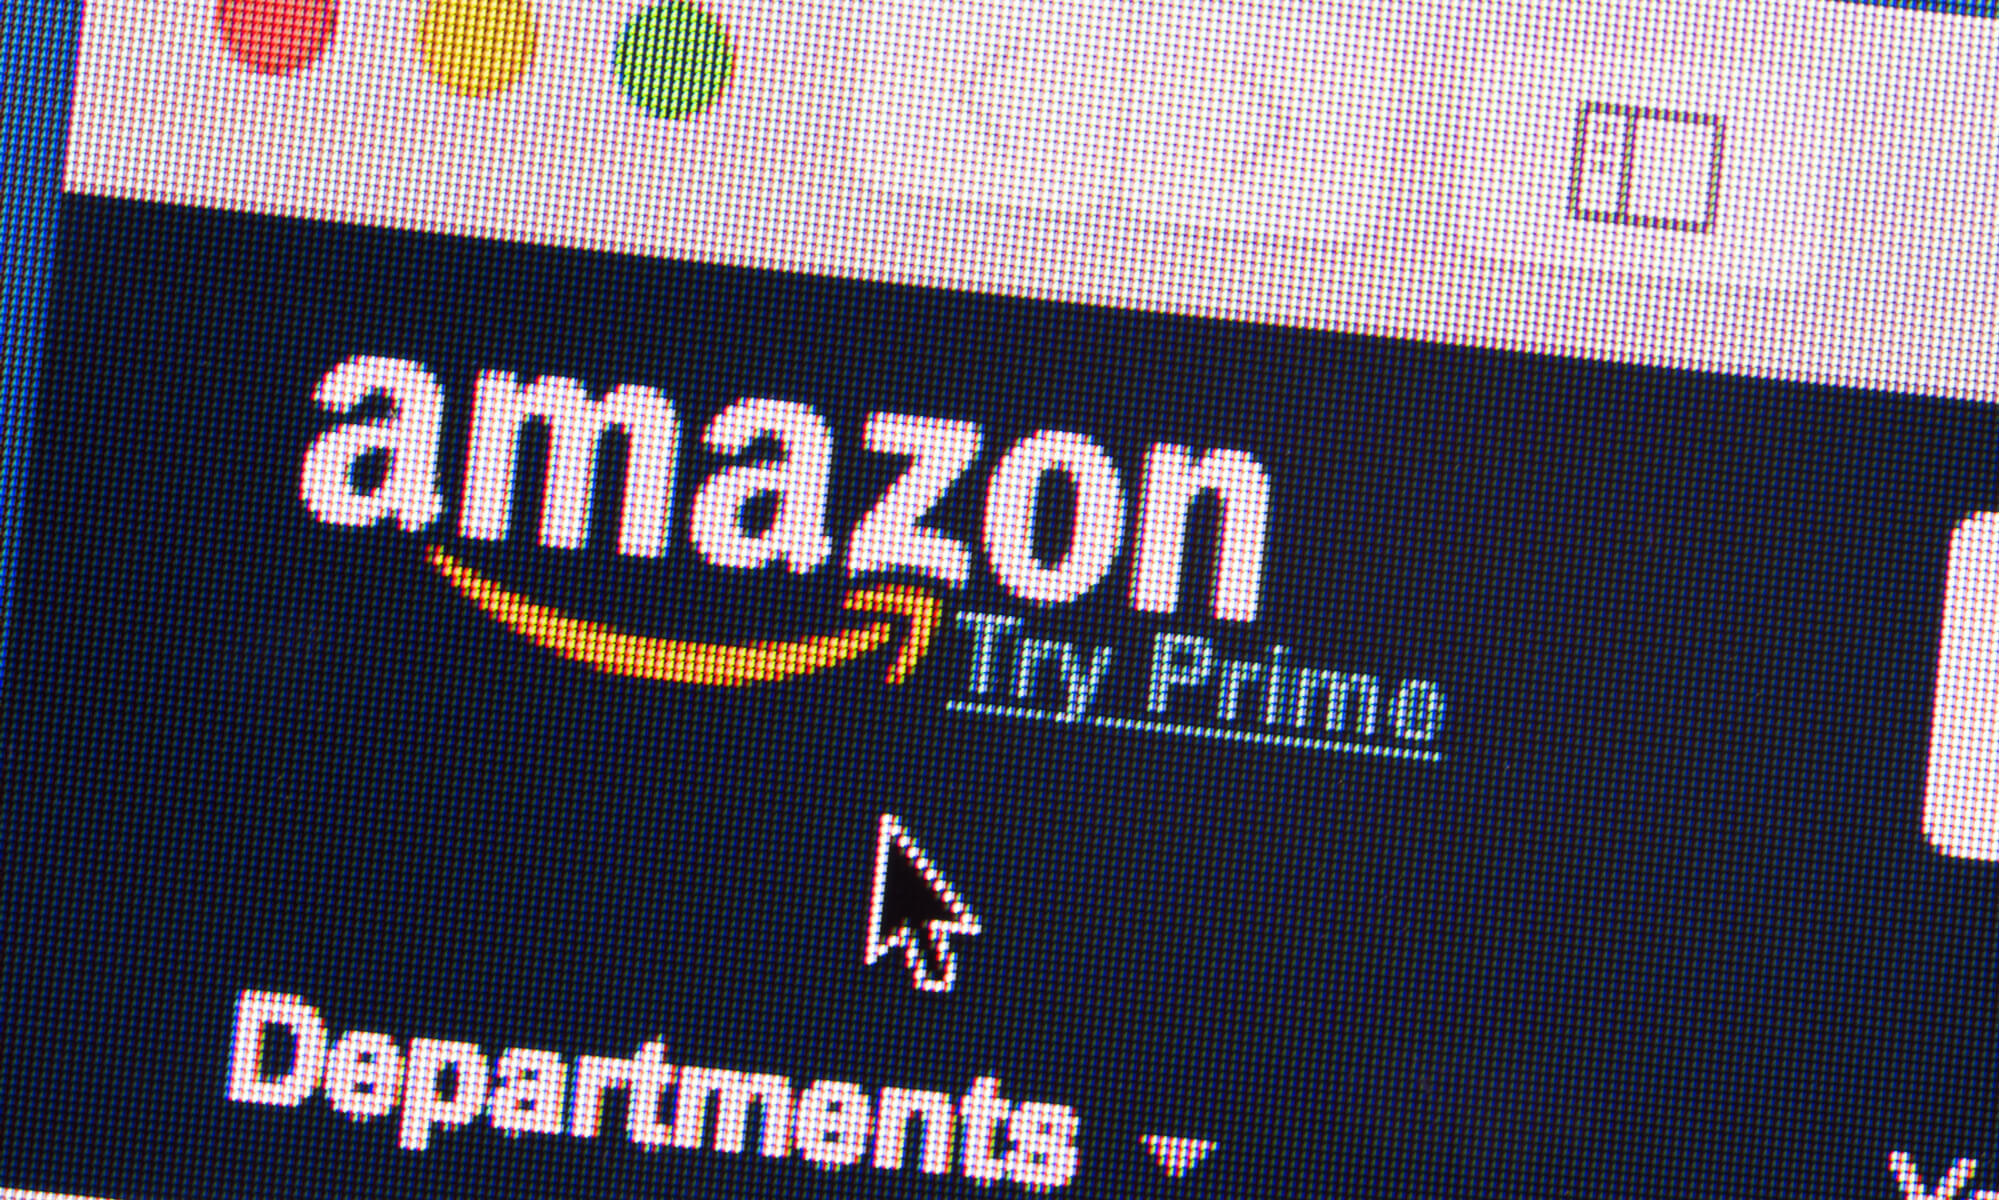 How to setup your Amazon account